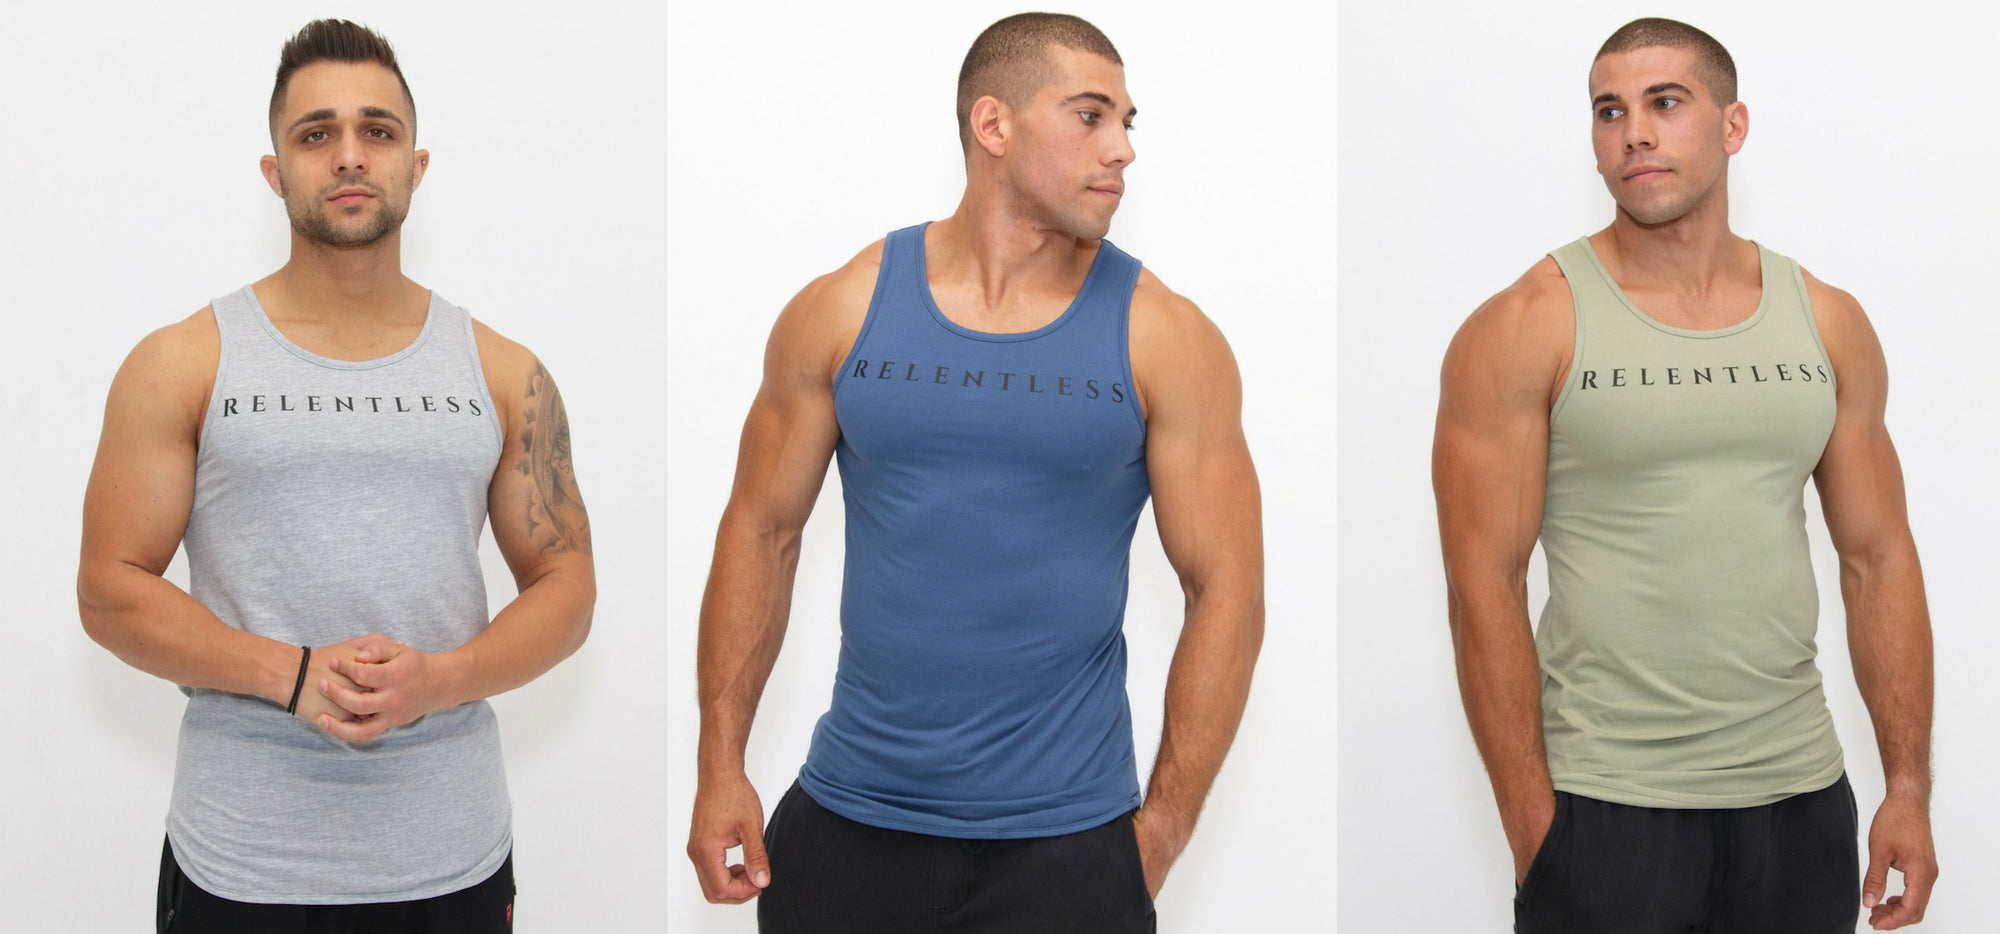 Freak Athletiq Relentless Bundle - 3 Tanks